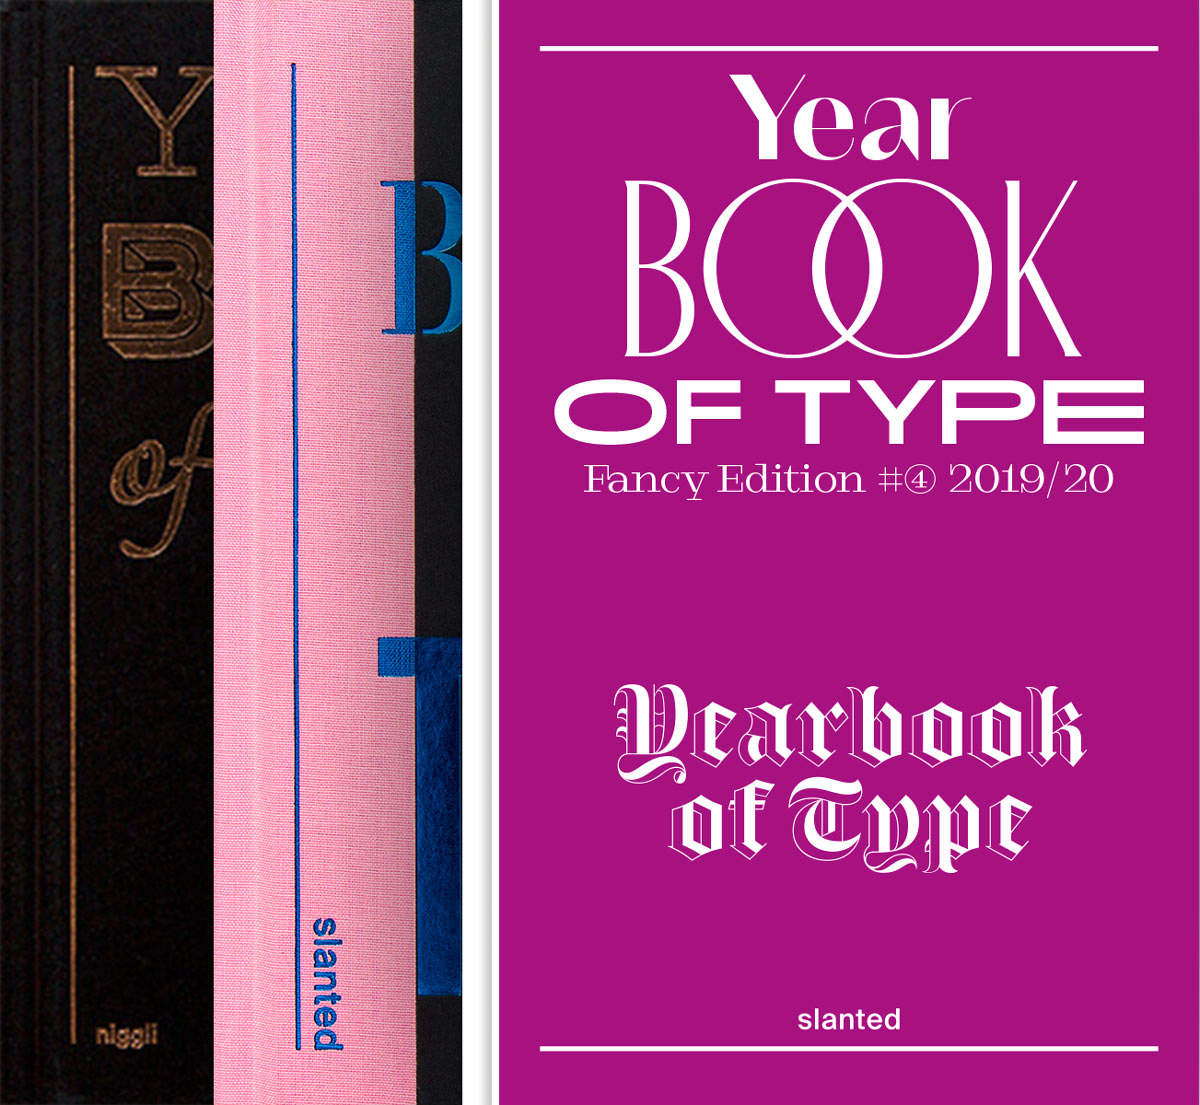 Yearbook-Bundle / Yearbook II, III & 2019/20